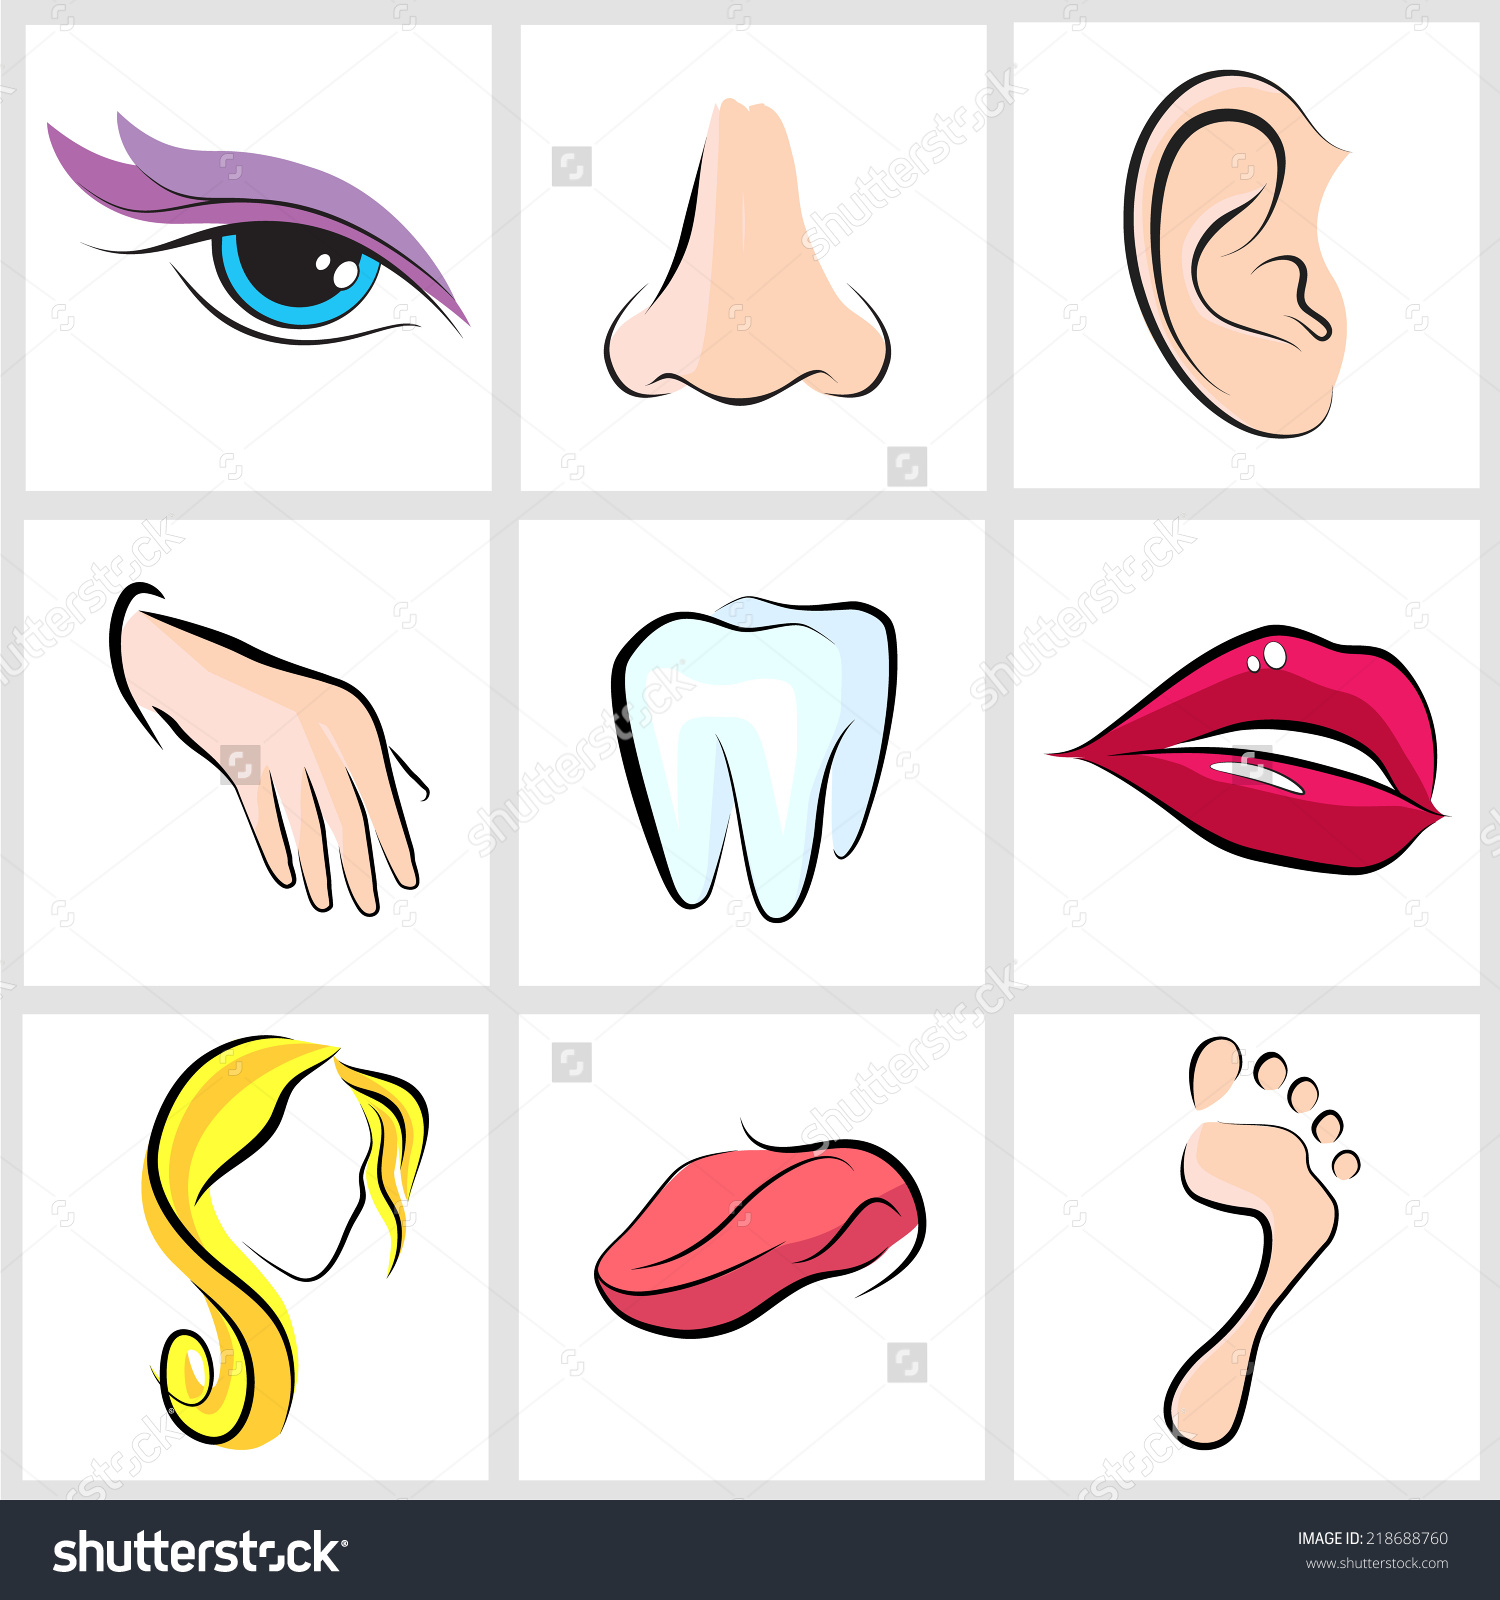 Set Icons Flat Parts Human Body Stock Vector 218688760.